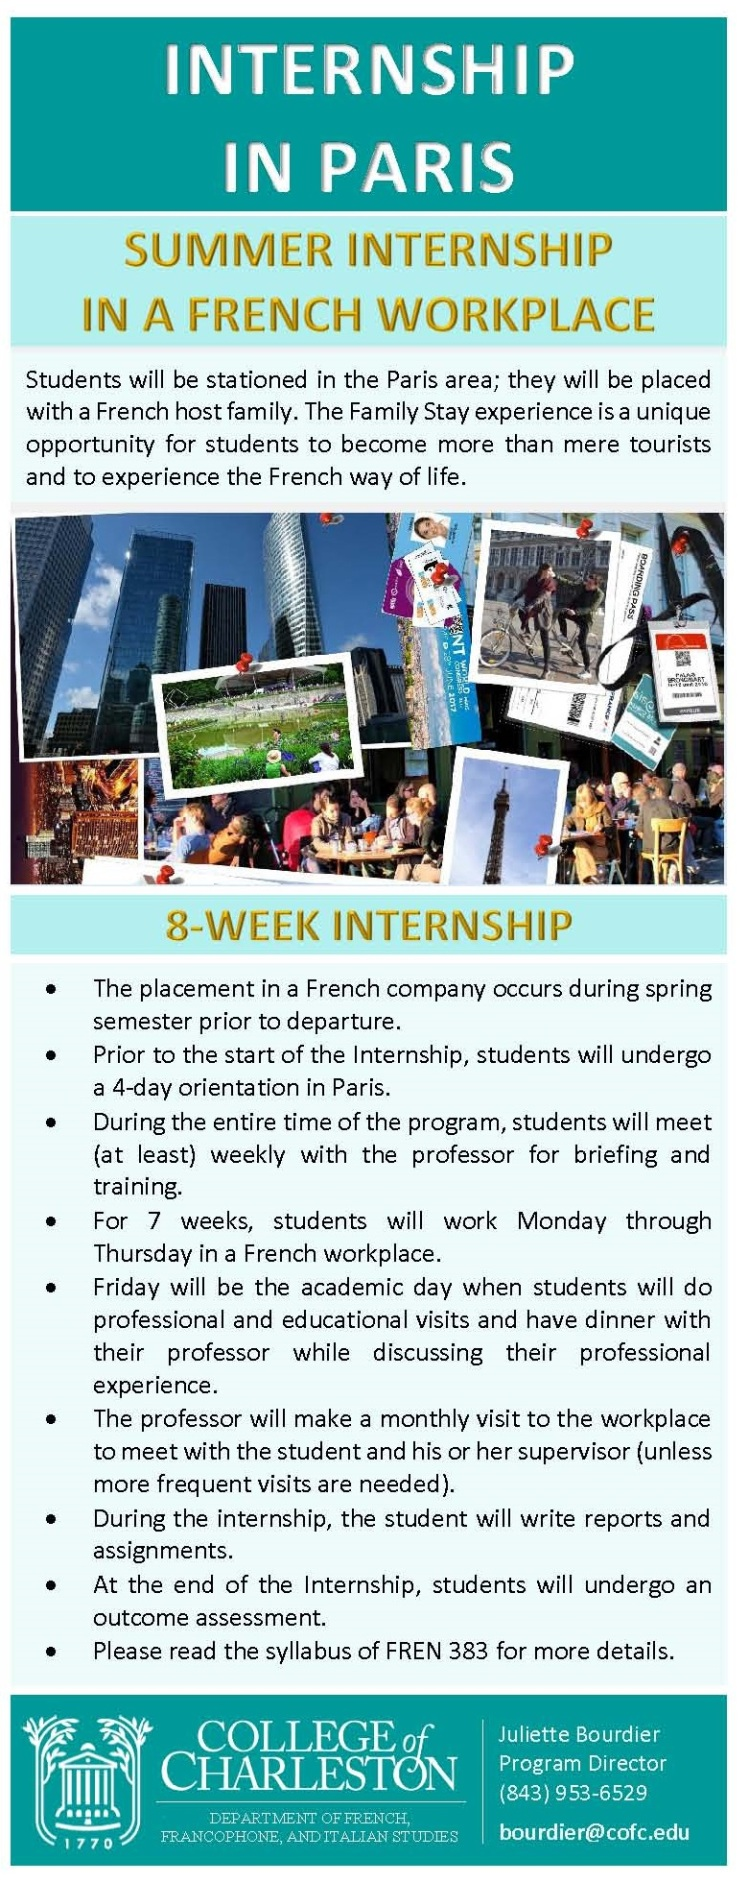 383 Study Abroad Internship In Paris Summer  French Again. Car Dealers Who Finance Bad Credit. Dealer Services Leesburg Dodge Dealer Cary Nc. Auto Insurance In Houston Summer House Miami. Defense Attorney Dallas Email & Sms Marketing. Bankruptcy Lawyer Bronx Business Credit Forum. Western Security Systems Civil Service Medals. First Financial Auto Loan Austin Dwi Arrests. Automotive Training Center Warminster Pa